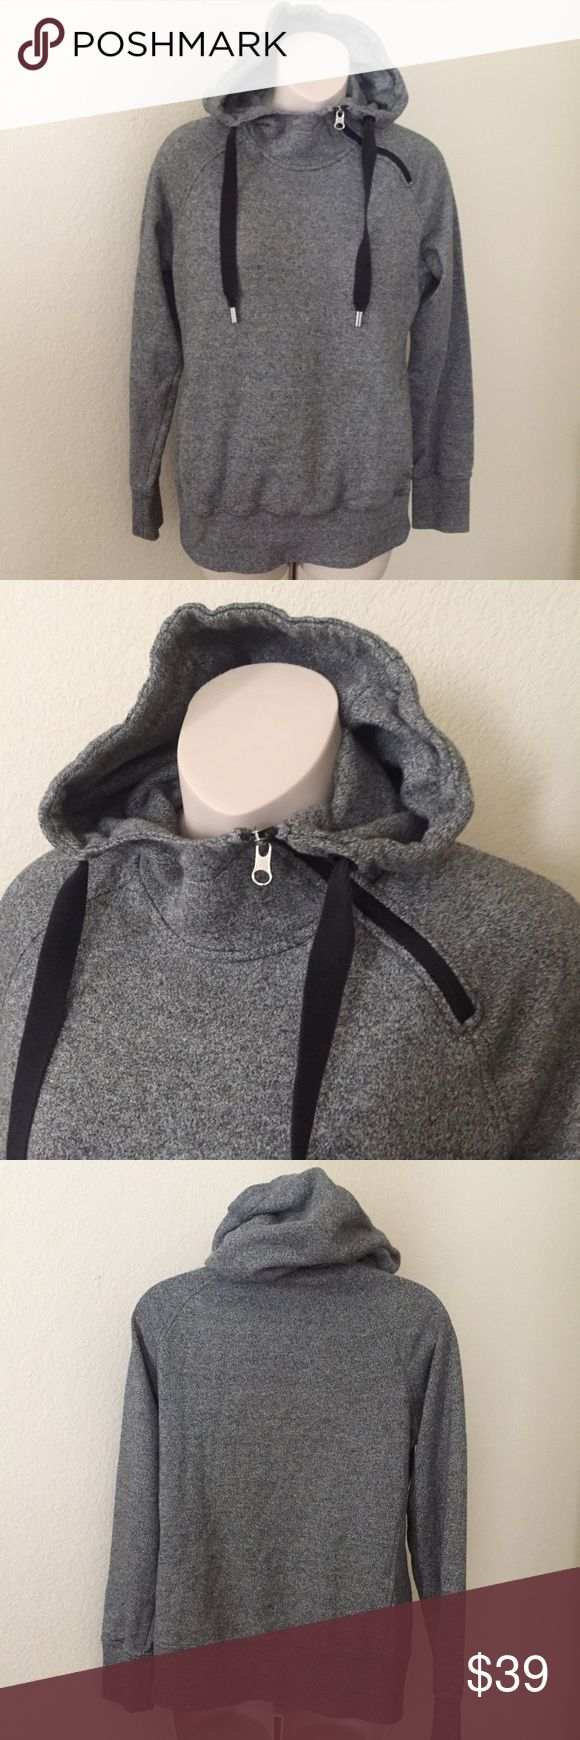 """The North Face Pullover Hoodie Sweatshirt S This is a North Face Pullover Hoodie. It is long sleeve with front pockets. Size small. Asymmetrical zipper on the top. Also has drawstring. Made of cotton/polyester blend. Bust 38"""" waist 39"""" length 25"""". Mint condition. No flaws. The North Face Jackets & Coats Utility Jackets"""